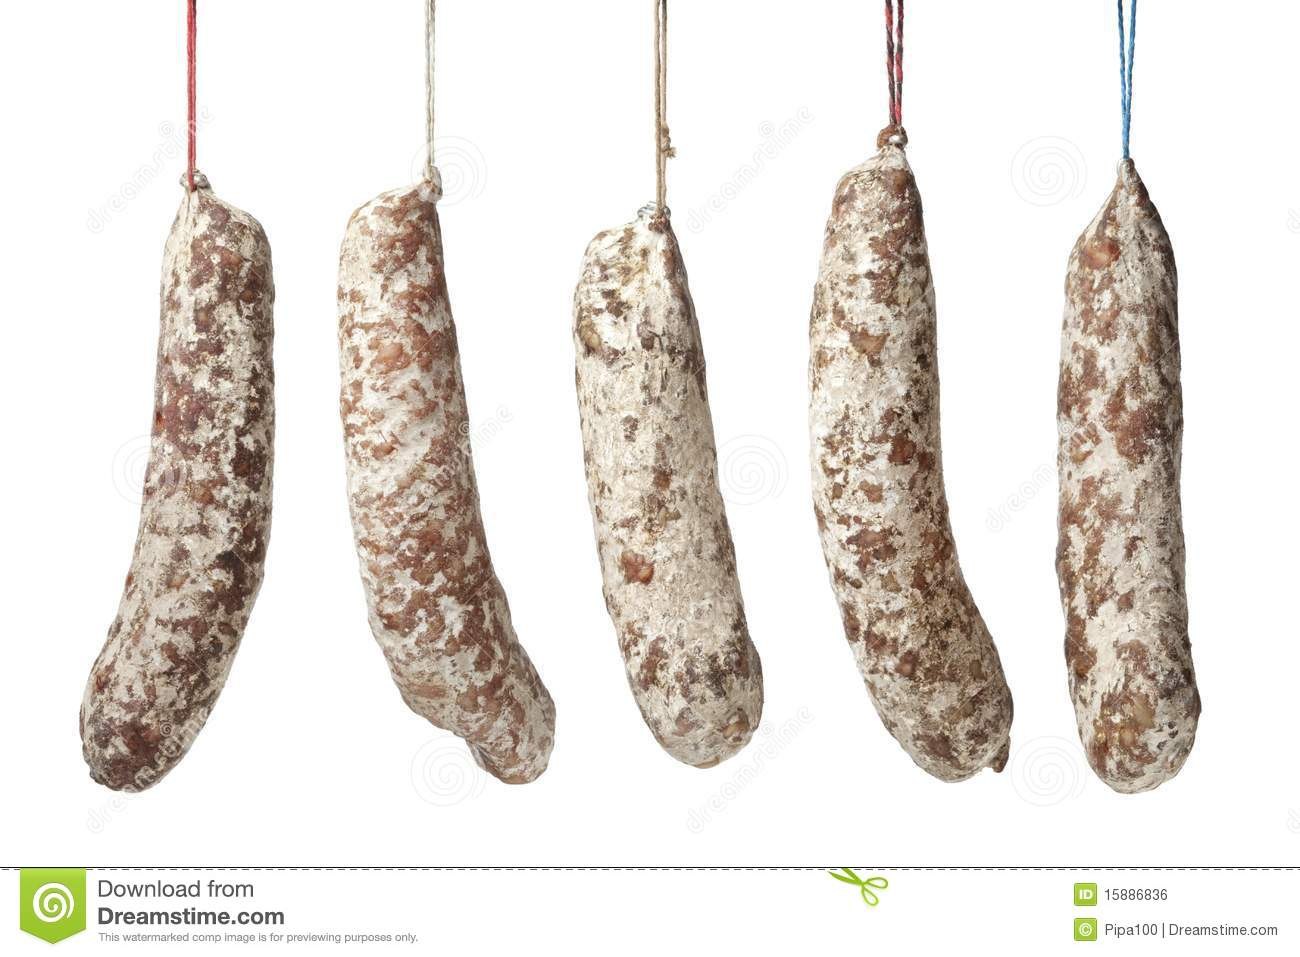 french sausages hanging on a string royalty free stock image image 15886836. Black Bedroom Furniture Sets. Home Design Ideas